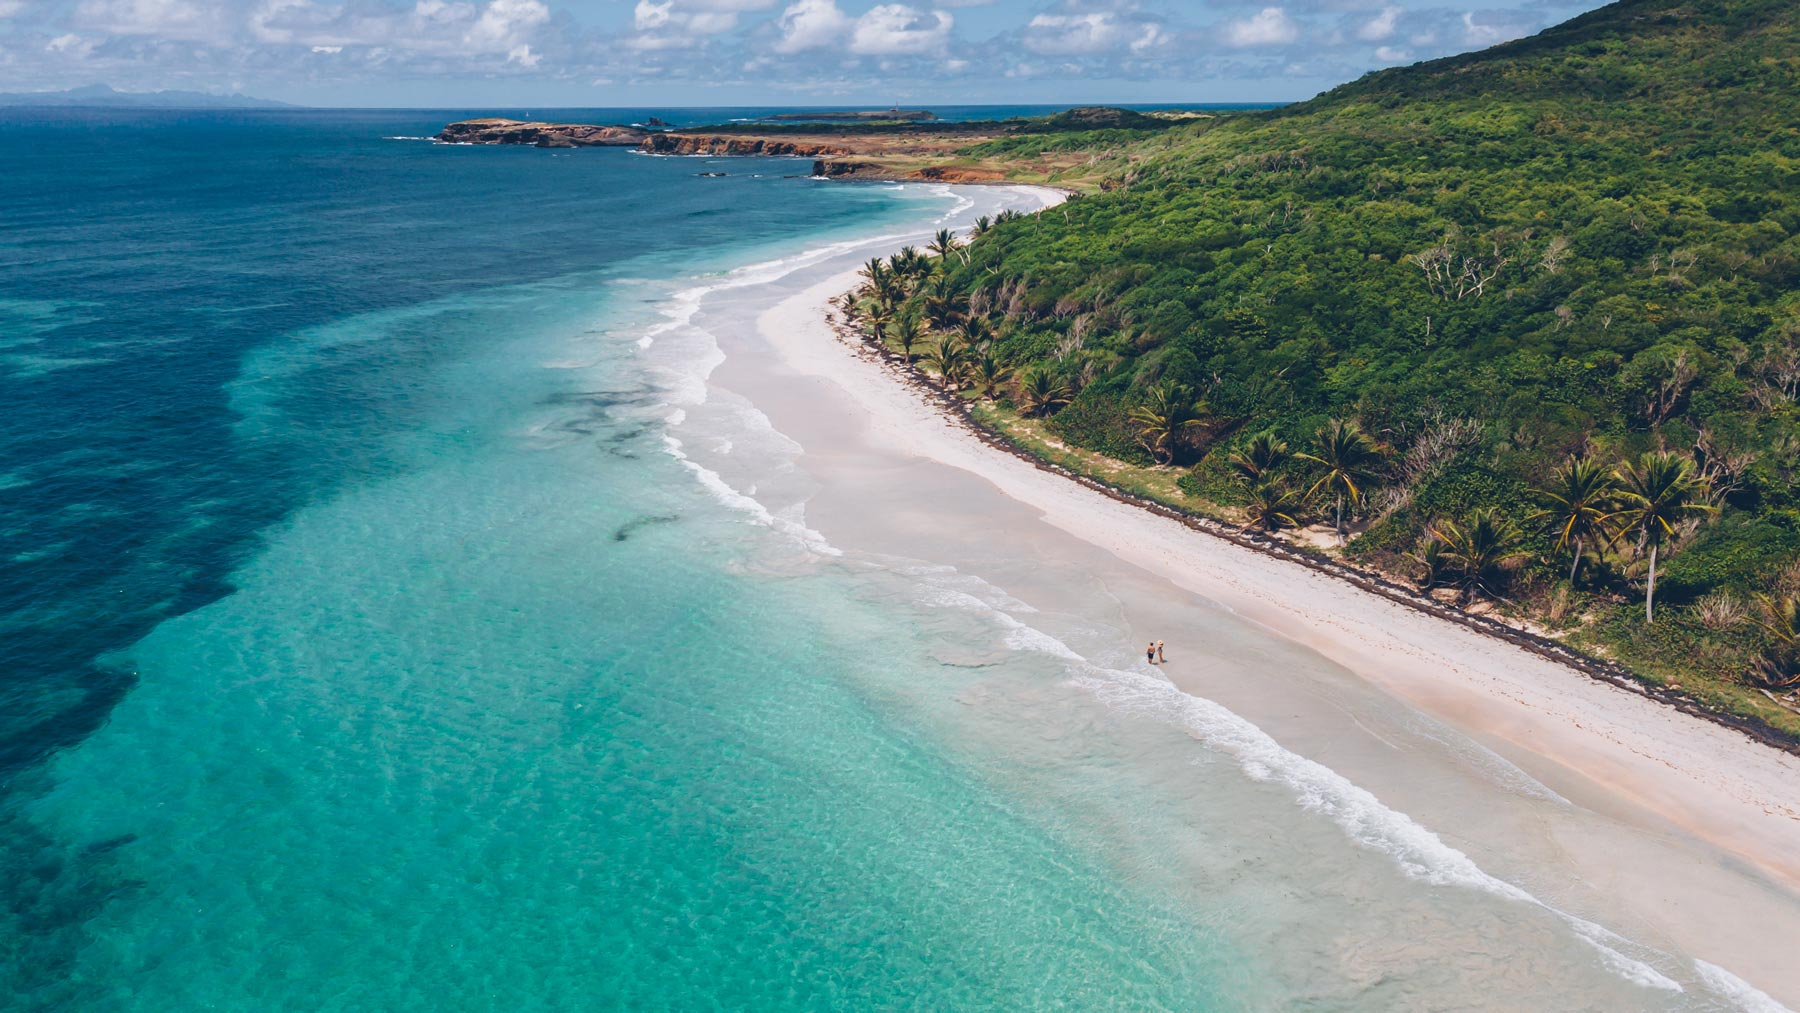 Belle plage Martinique: Anse Trabaud